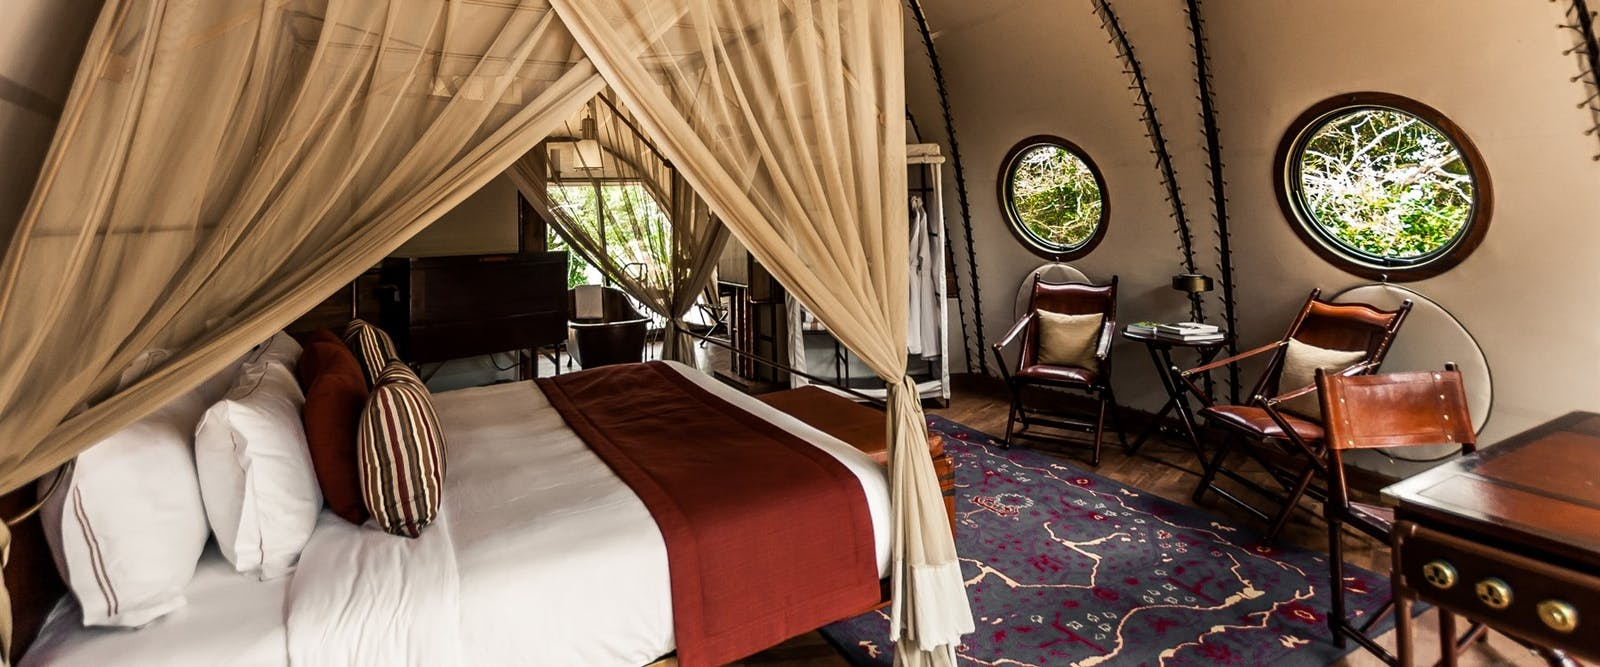 cocoon interior at Wild Coast Tented Lodge, Yala National Park